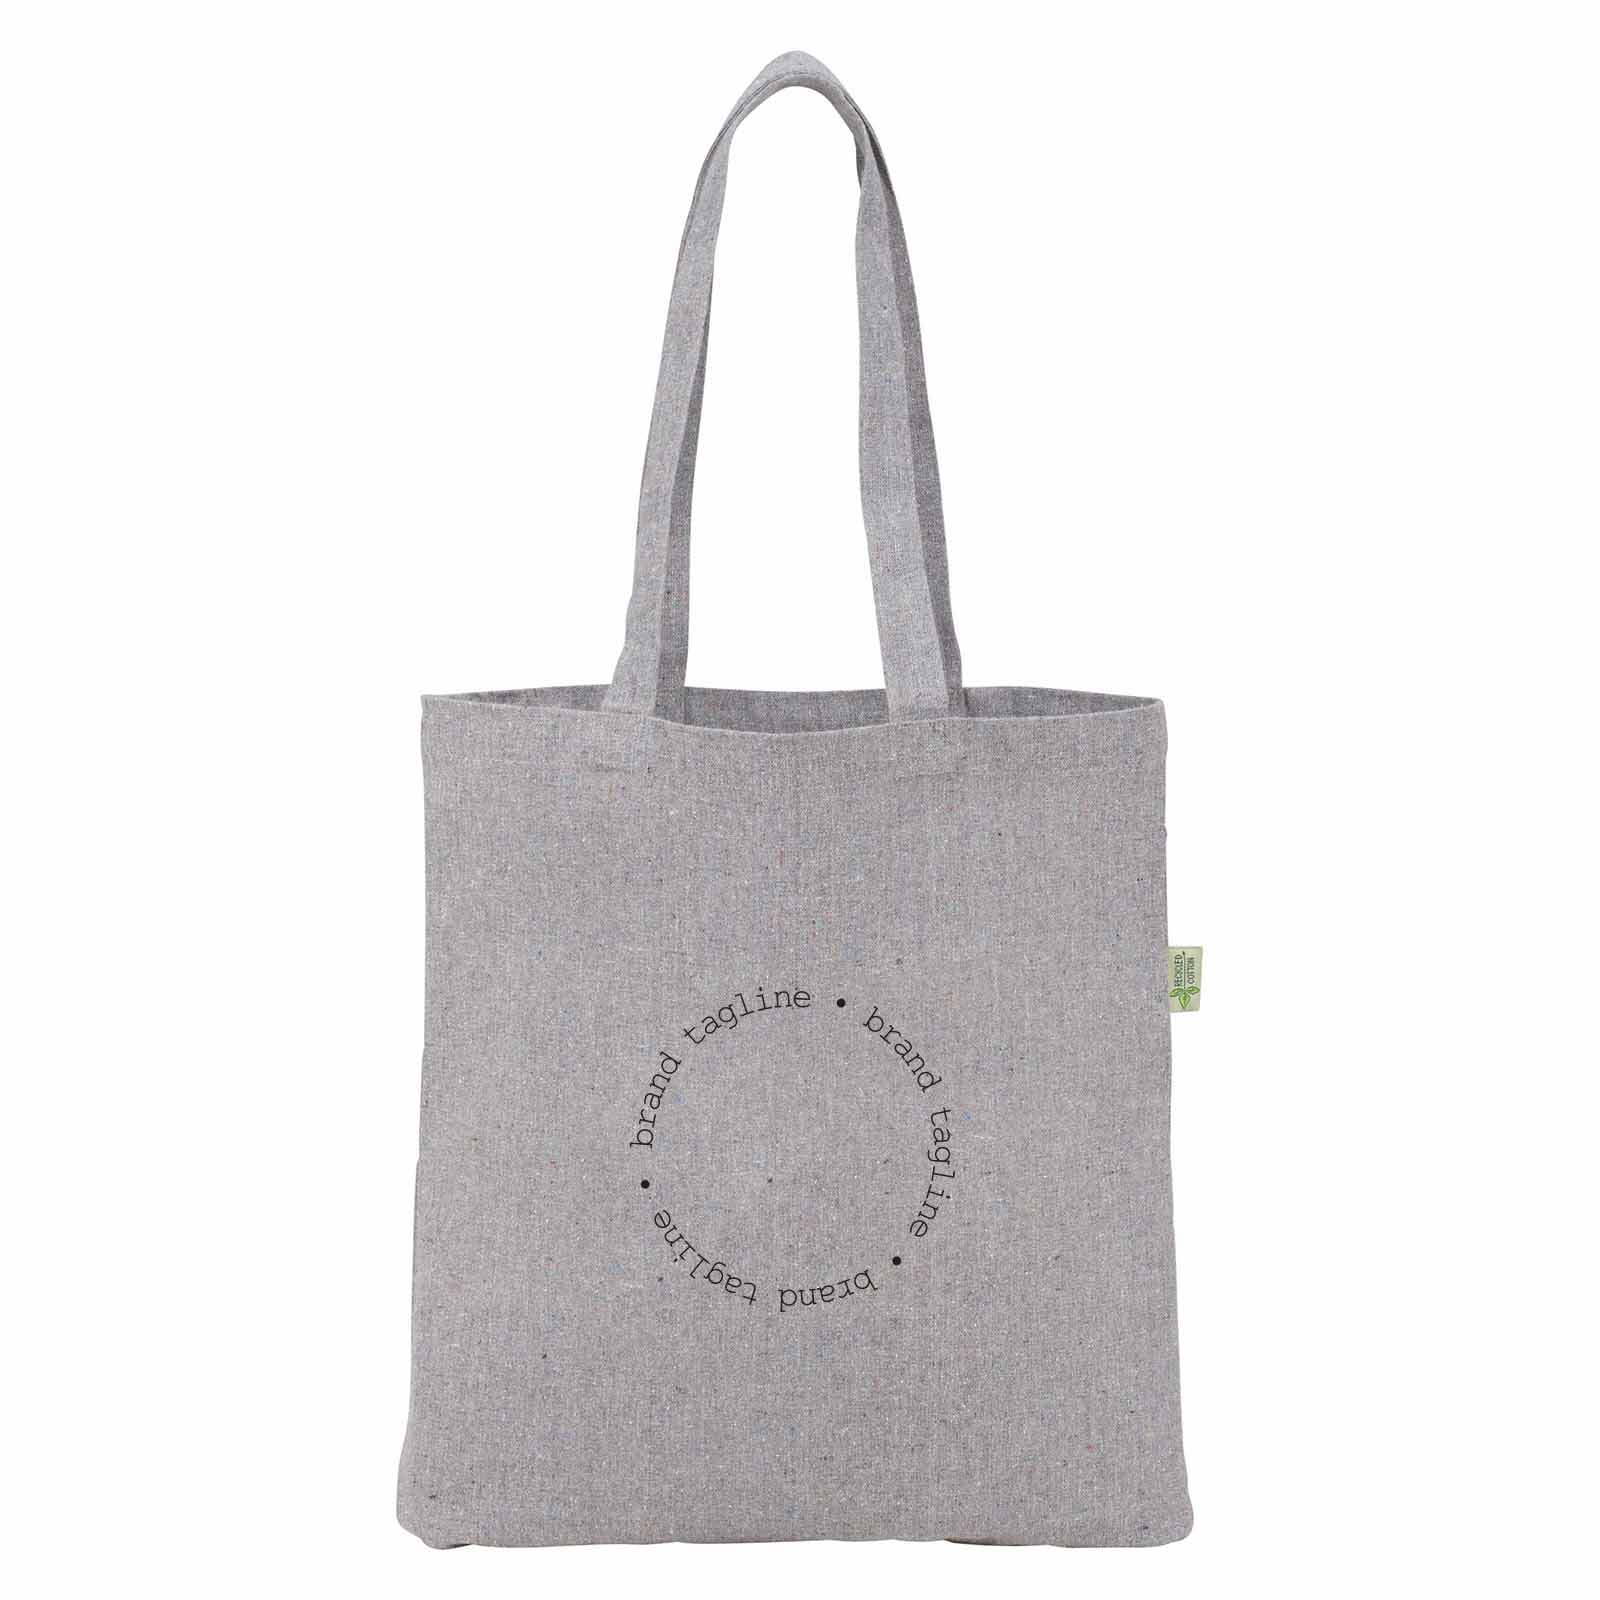 242995 speckled recycled cotton tote one color one location imprint